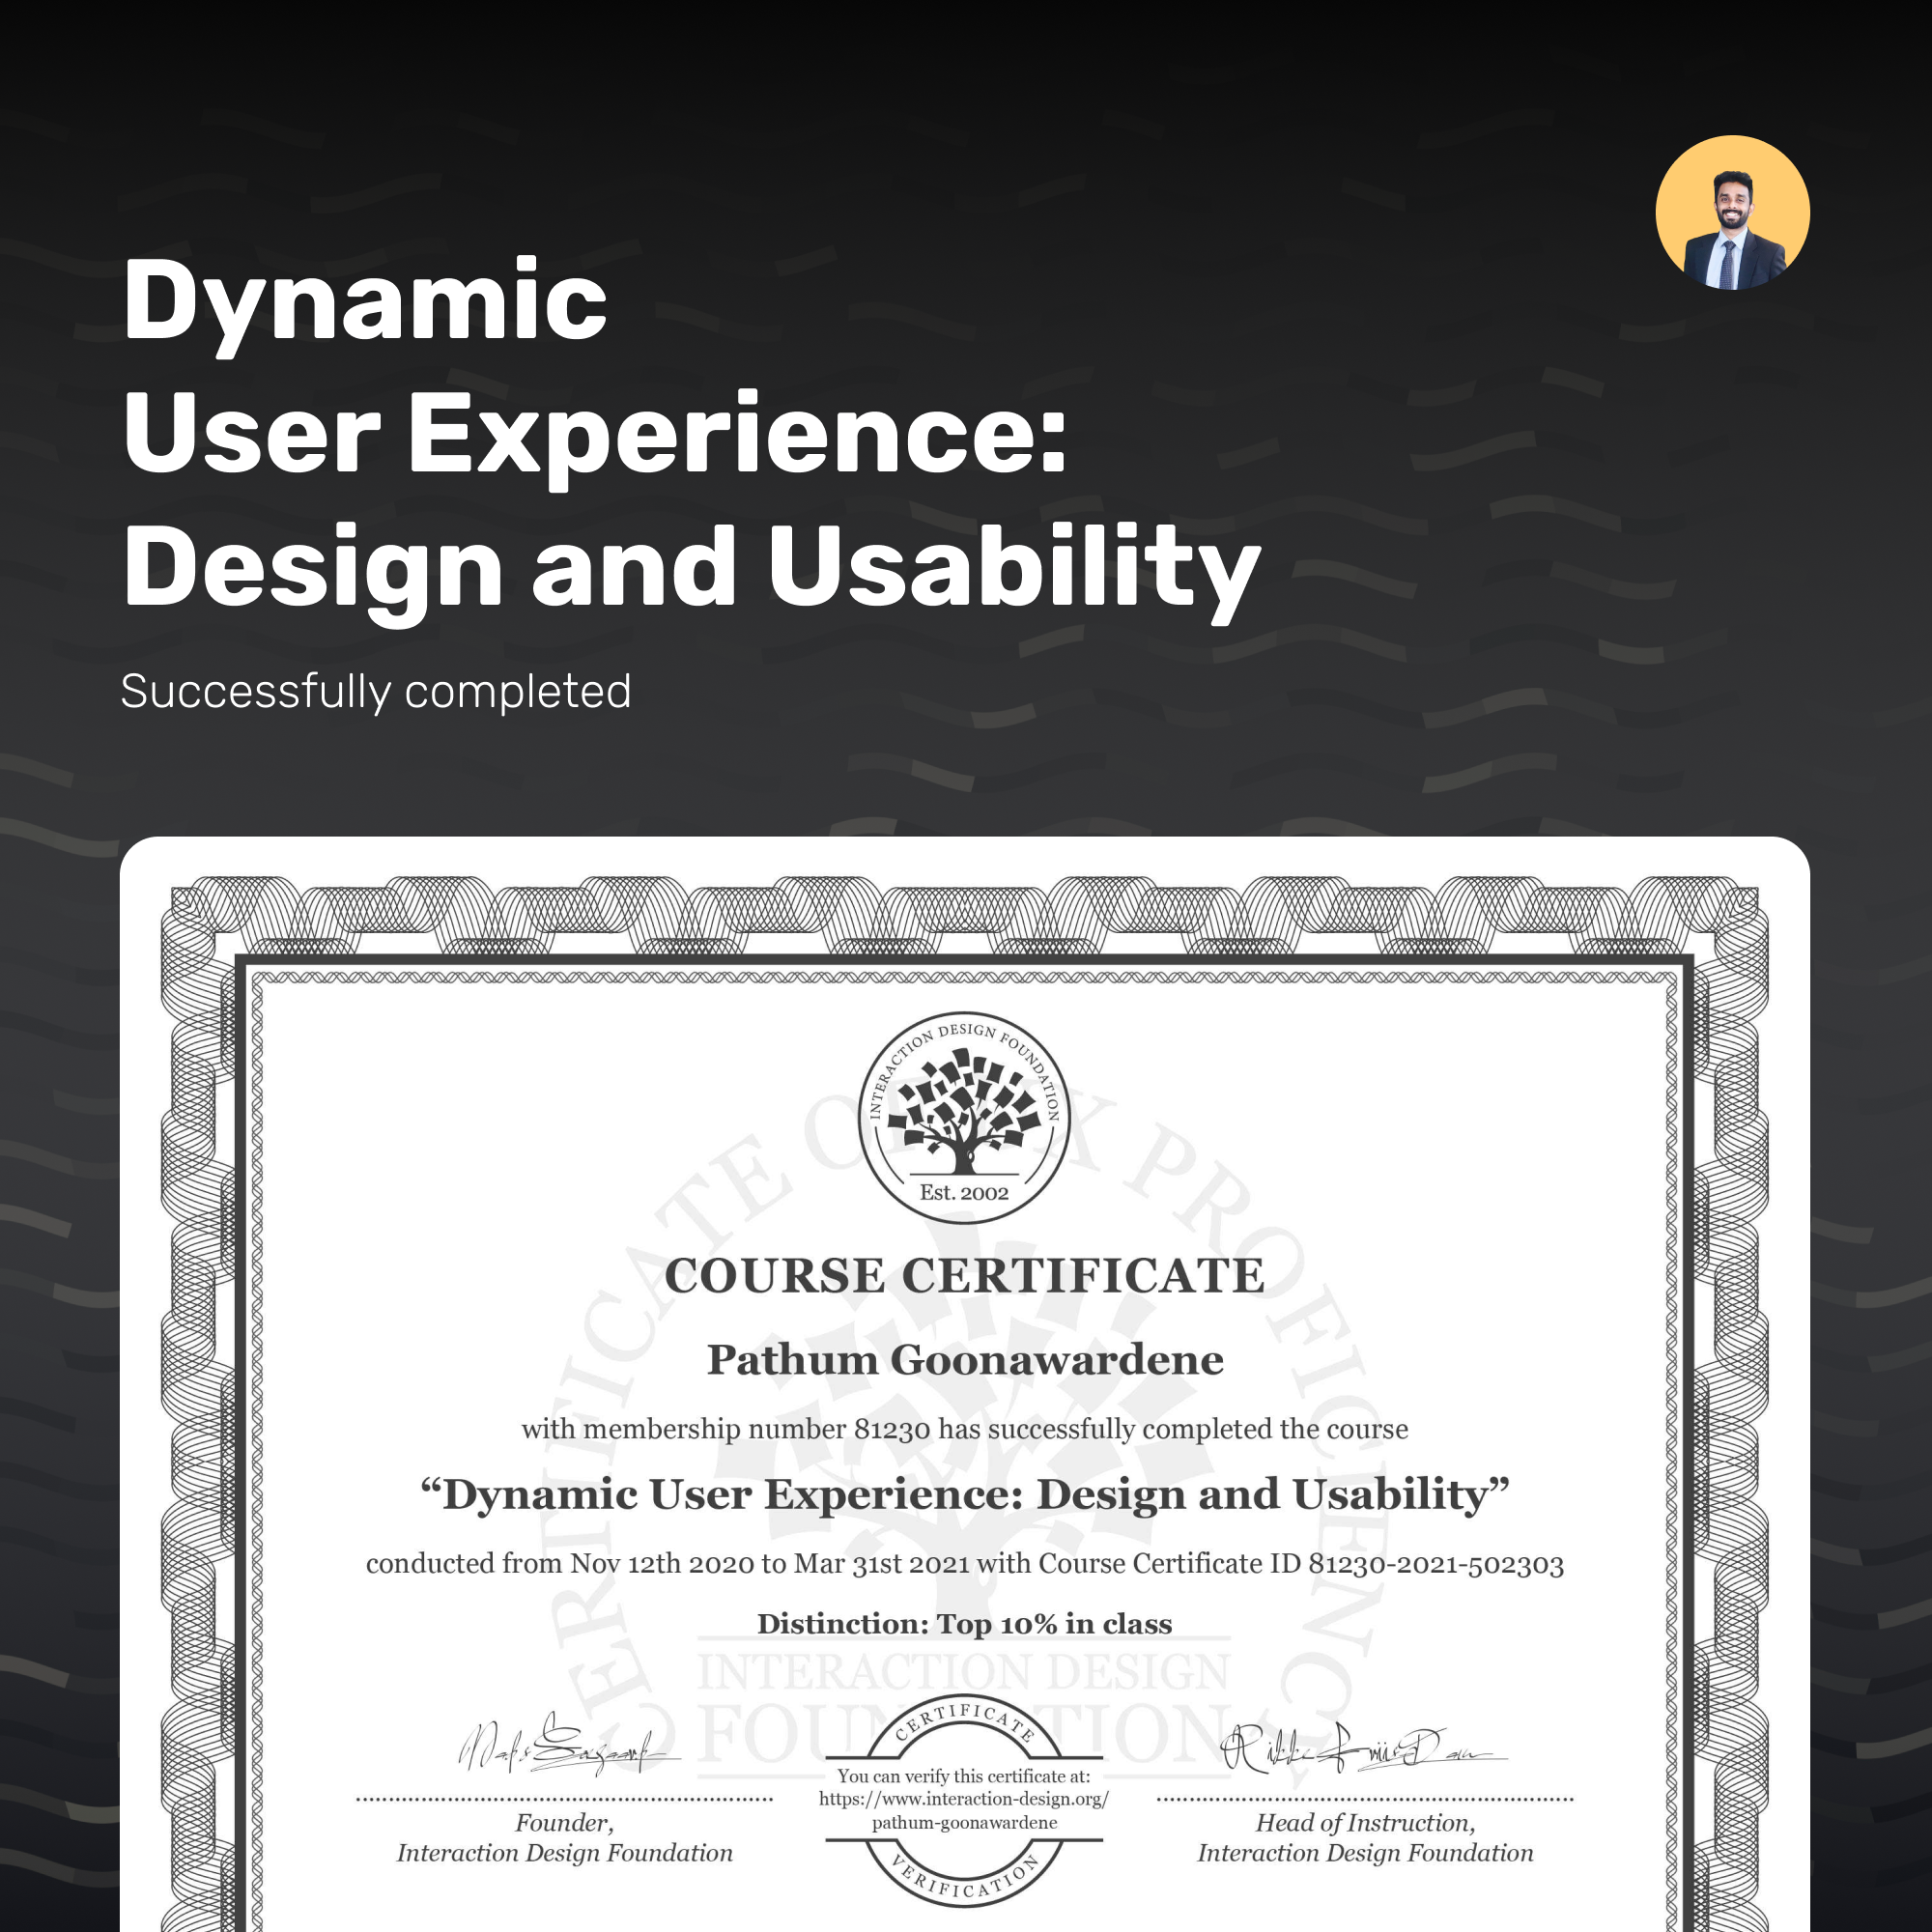 Dynamic User Experience: Design and Usability